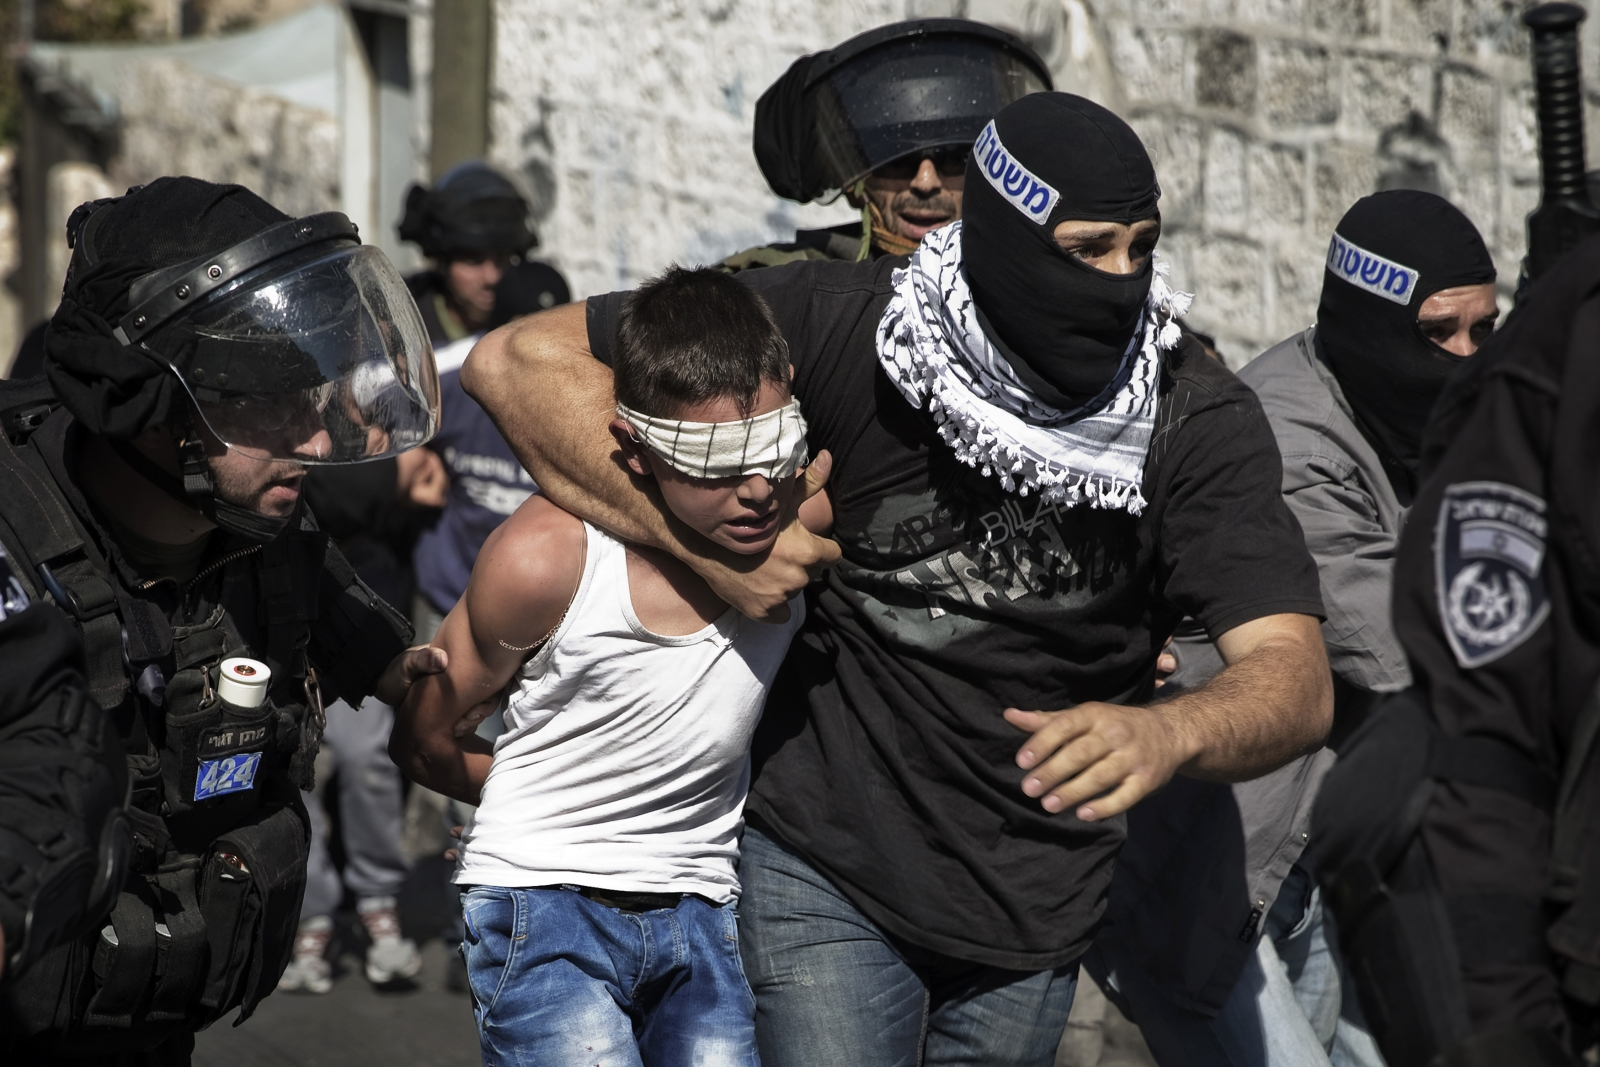 Palestinian children arrested in jerusalem